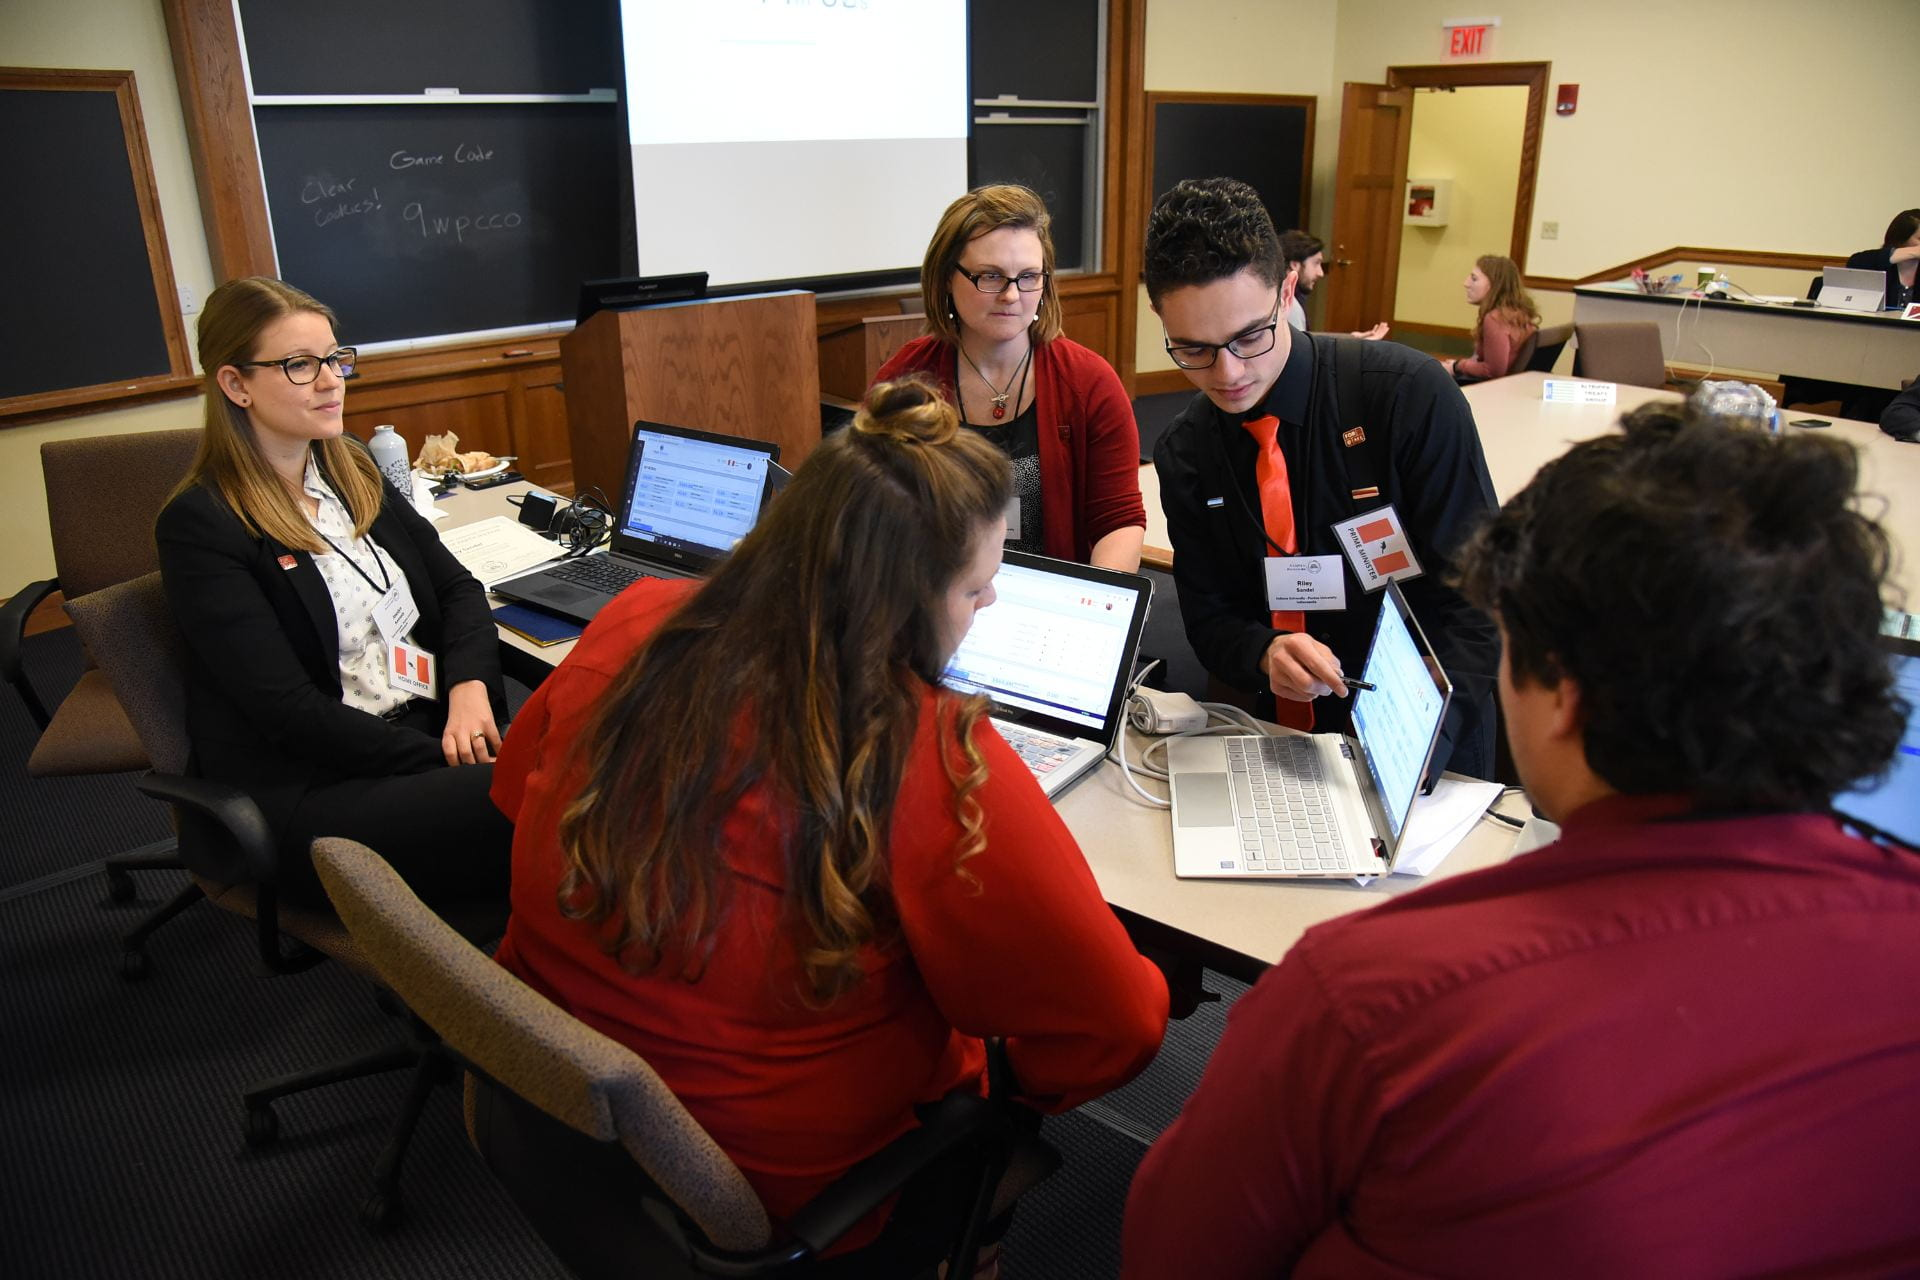 Students sit together at a table going through documents and reading through policy options, discussing possible solutions to simulated migration issues.